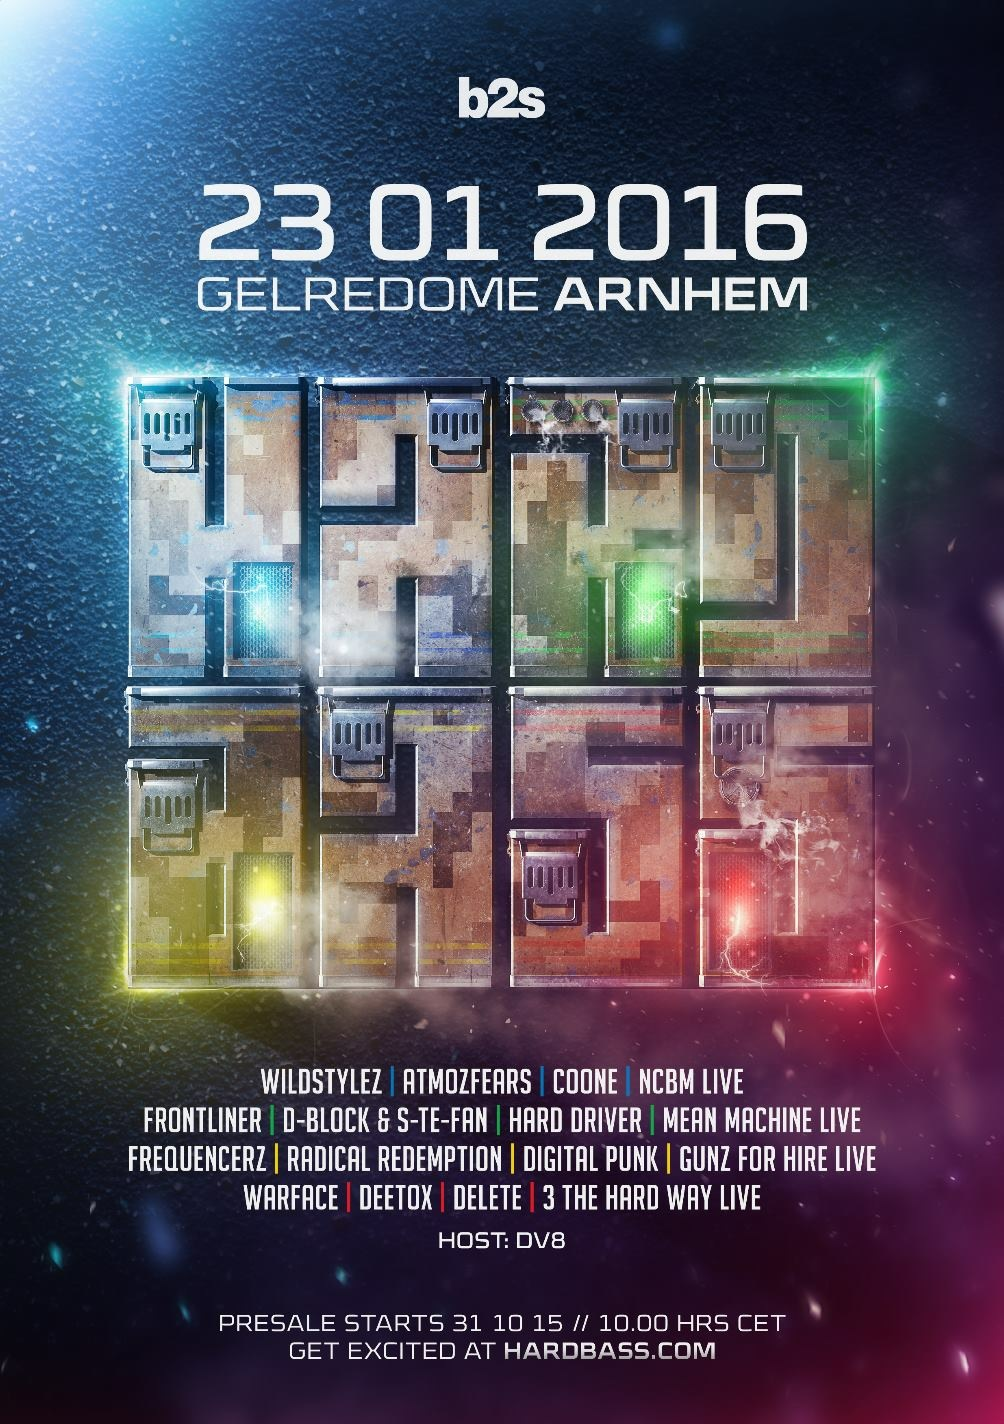 cyberfactory 2013 b2s hard bass gelredome arnhem holland